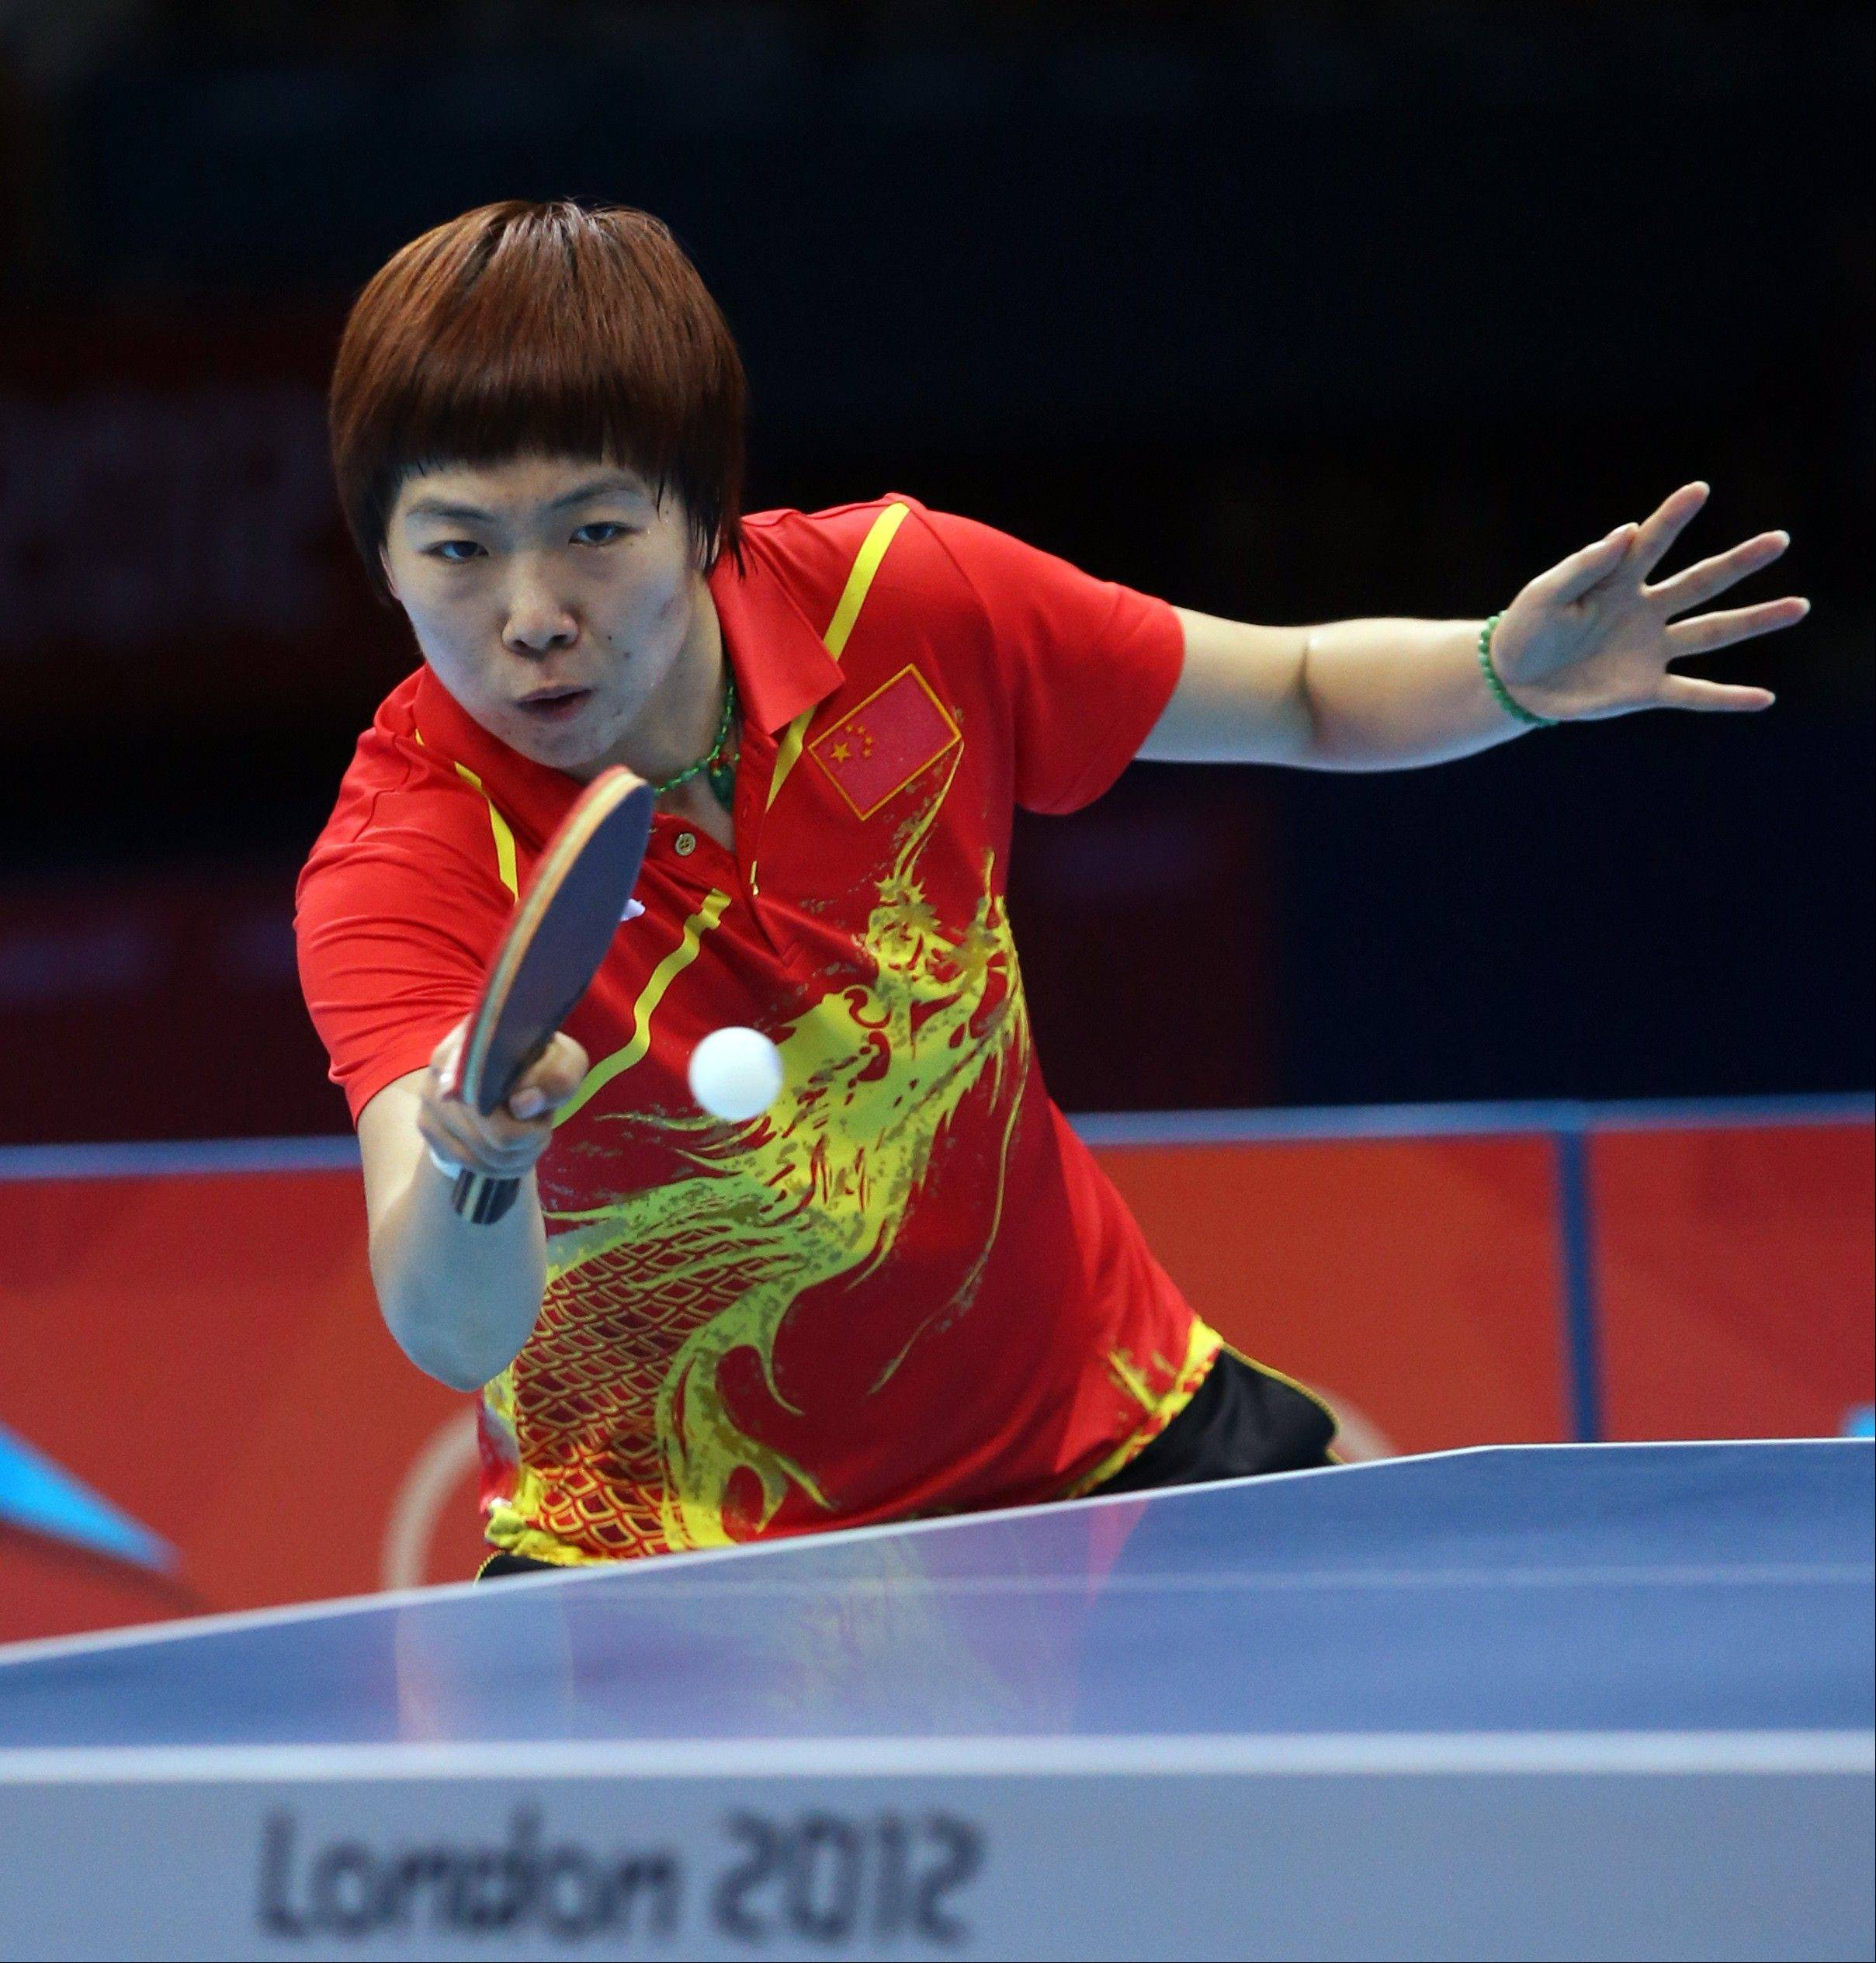 China's Li Xiaoxia takes a shot in a women's gold medal table tennis match against China's Ding Ning at the 2012 Summer Olympics on Aug. 1. Women's team table tennis wraps up Tuesday, and the Chinese are heavily favored.